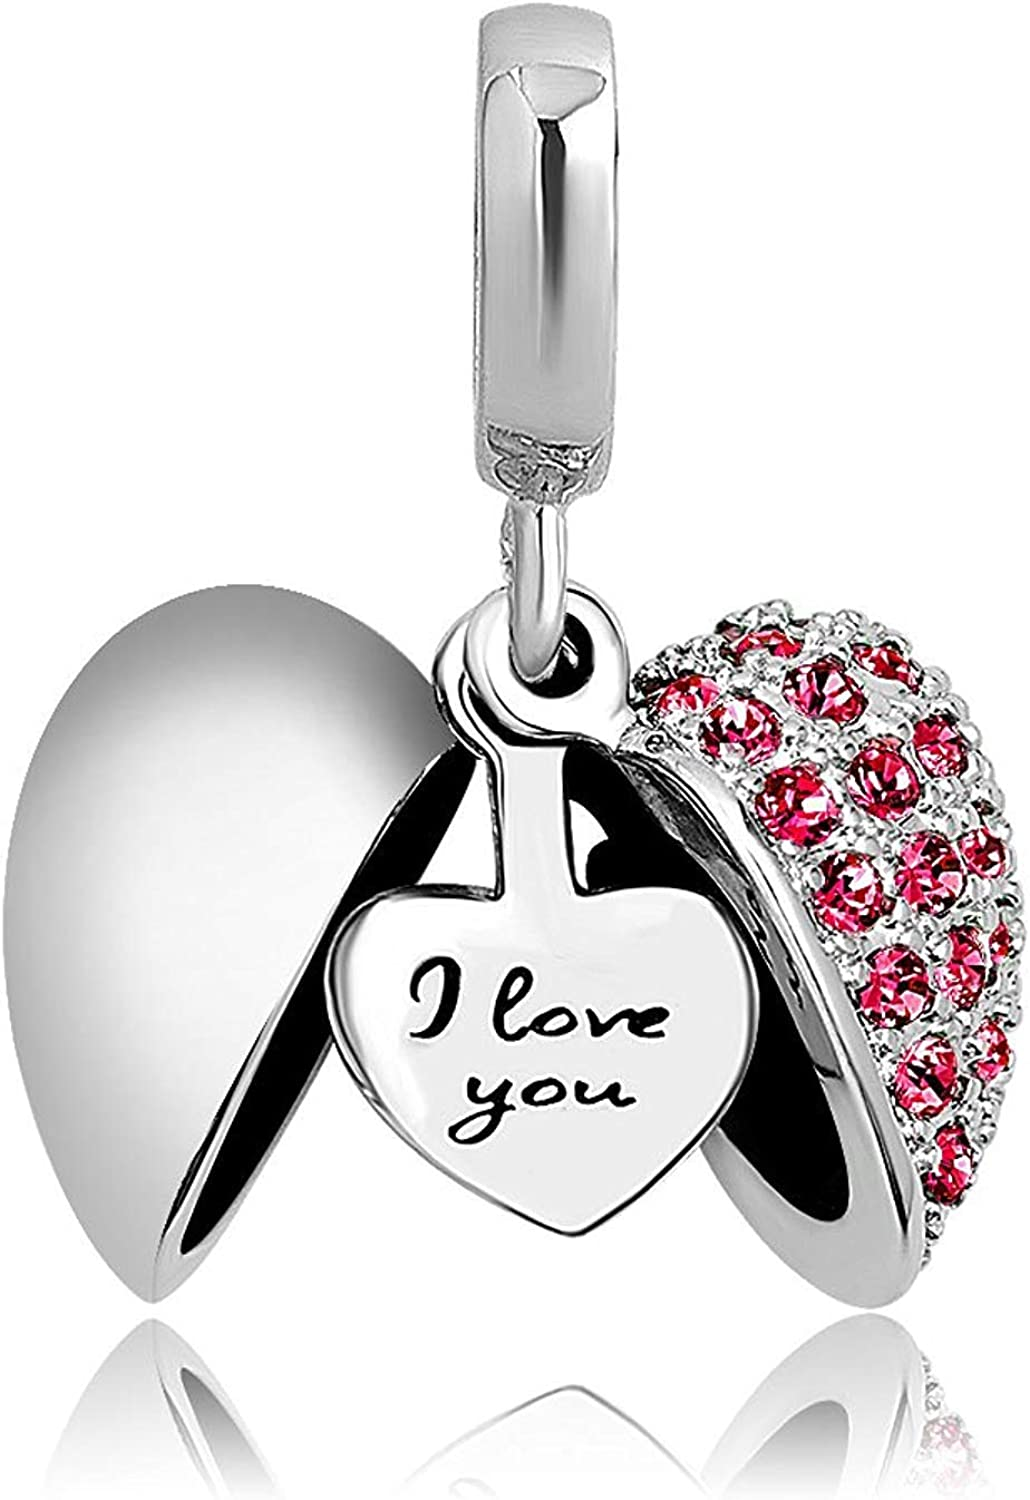 Charmed Craft Heart I Love You Charms Openable Crystal Charms Dangle Beads for Snake Chain Bracelets